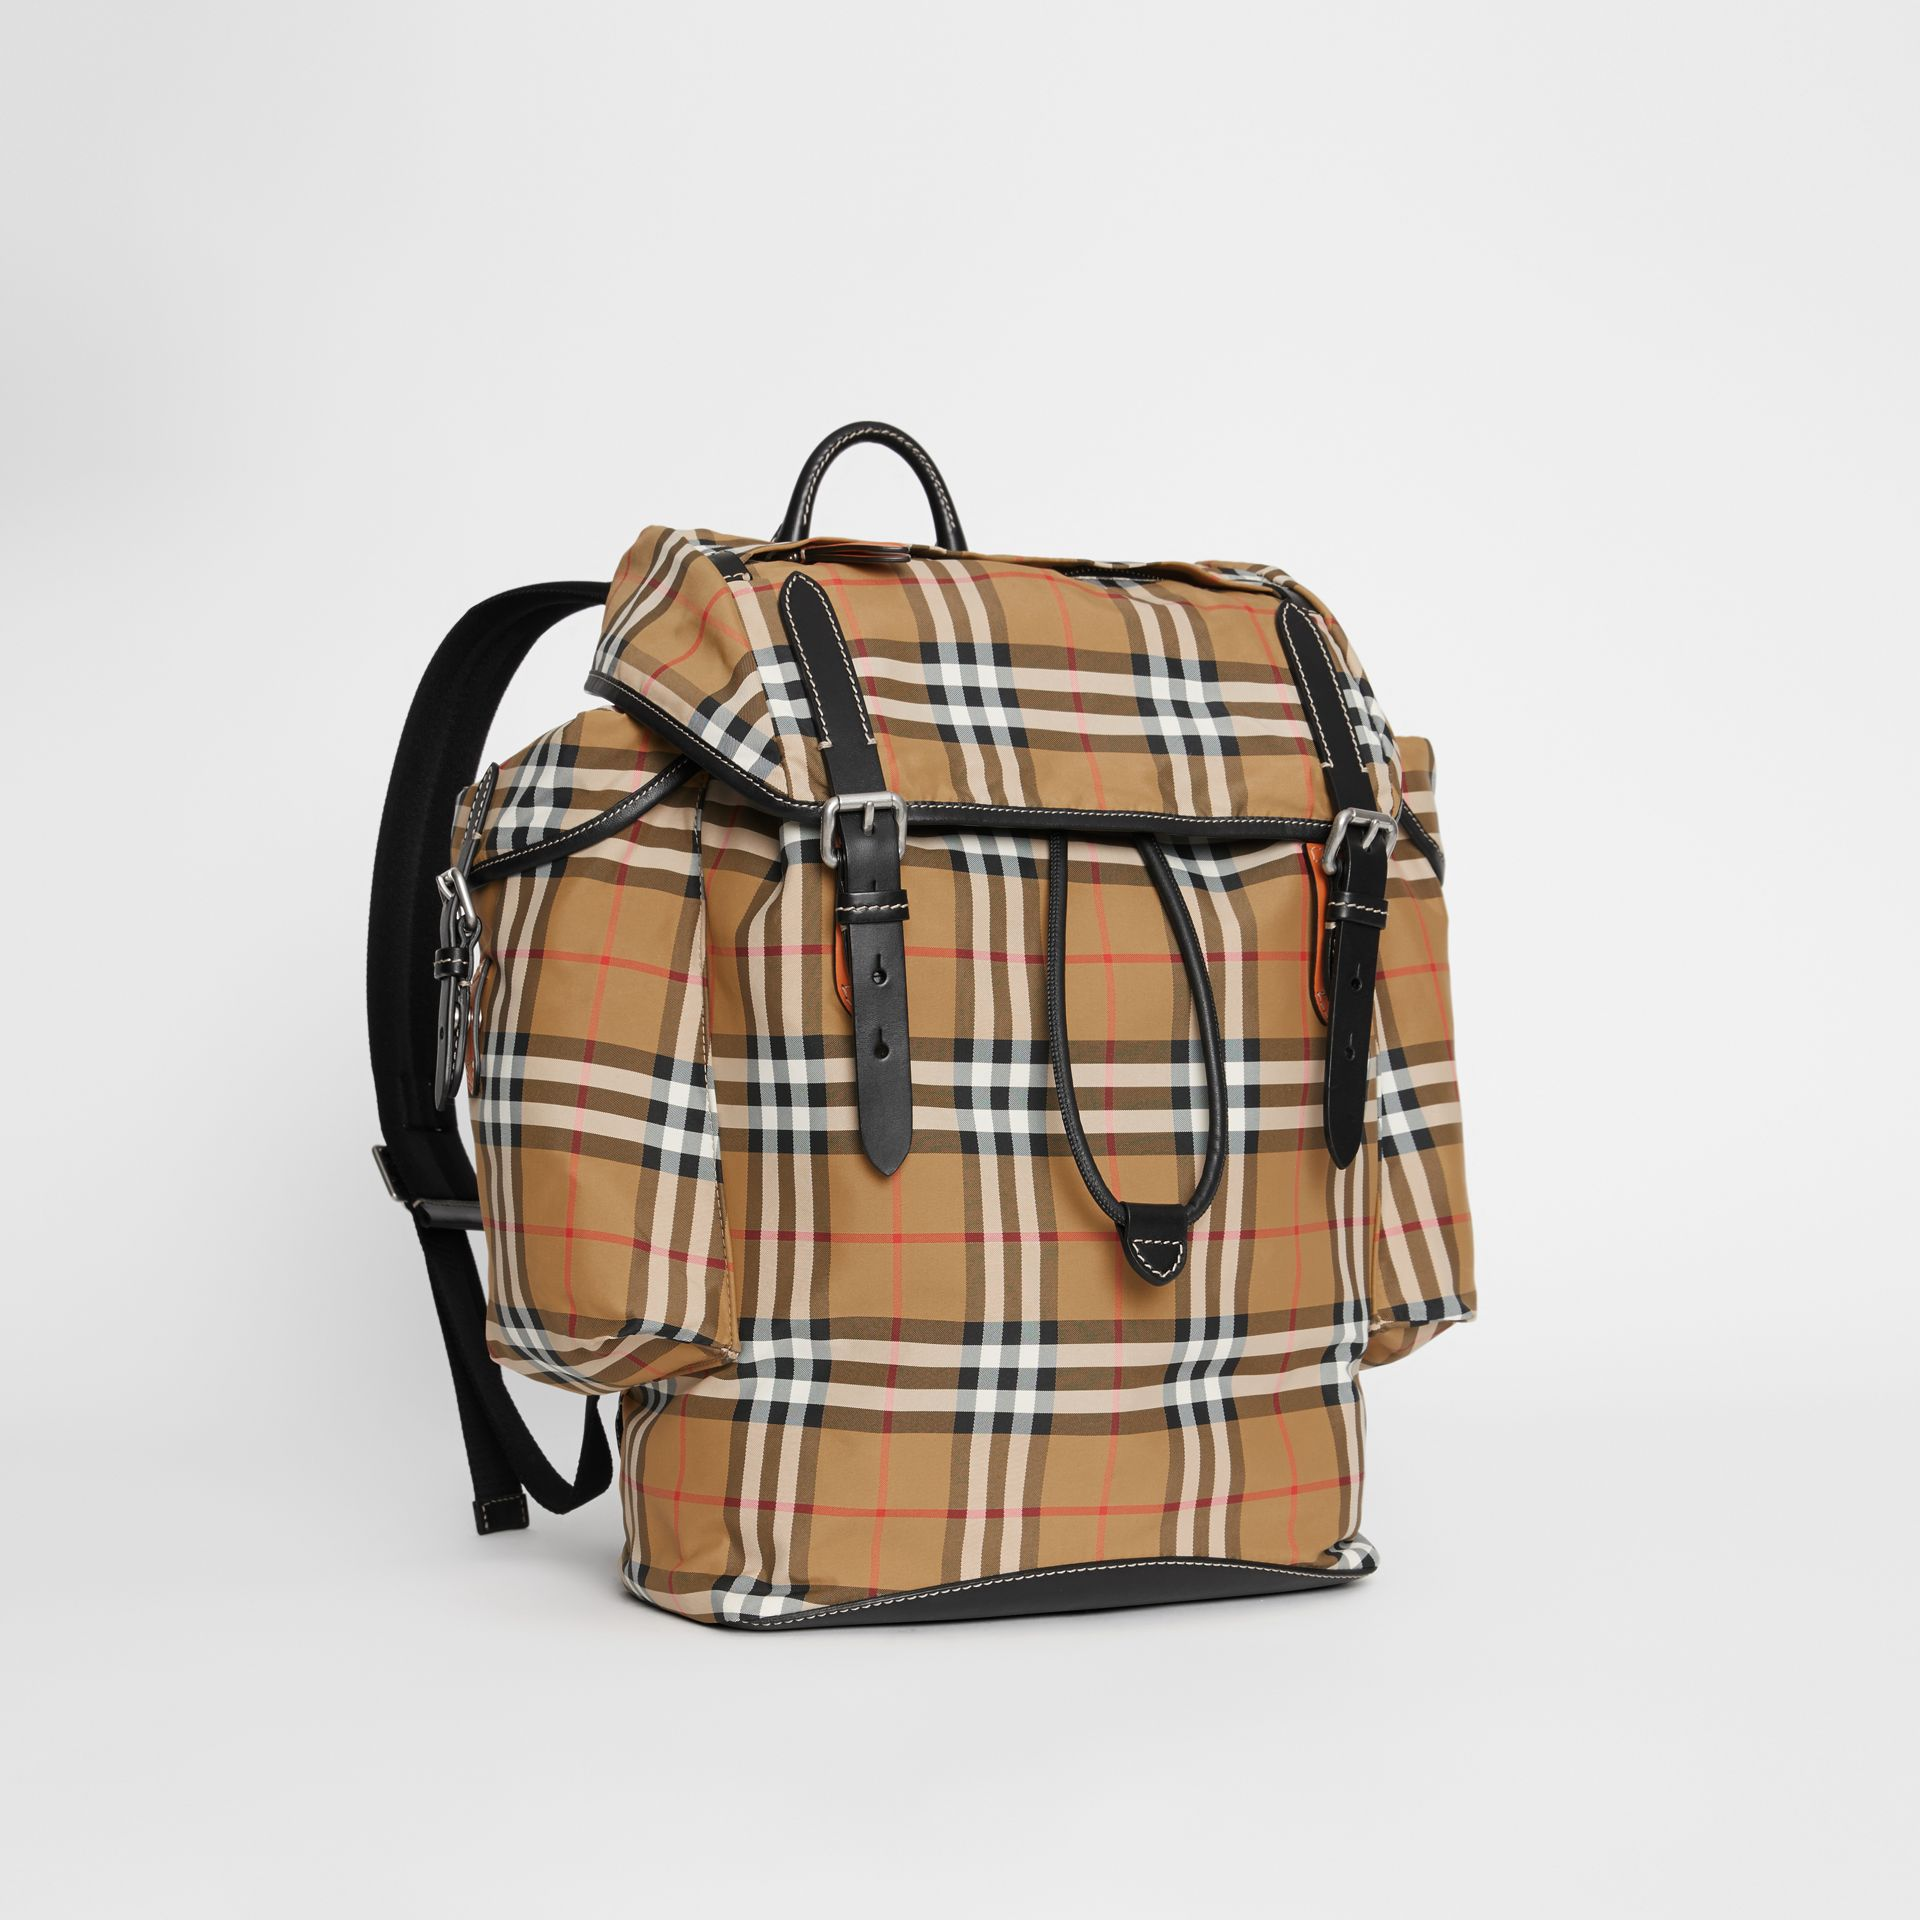 Sac à dos en cuir à motif Vintage check (Jaune Antique) - Homme | Burberry - photo de la galerie 6